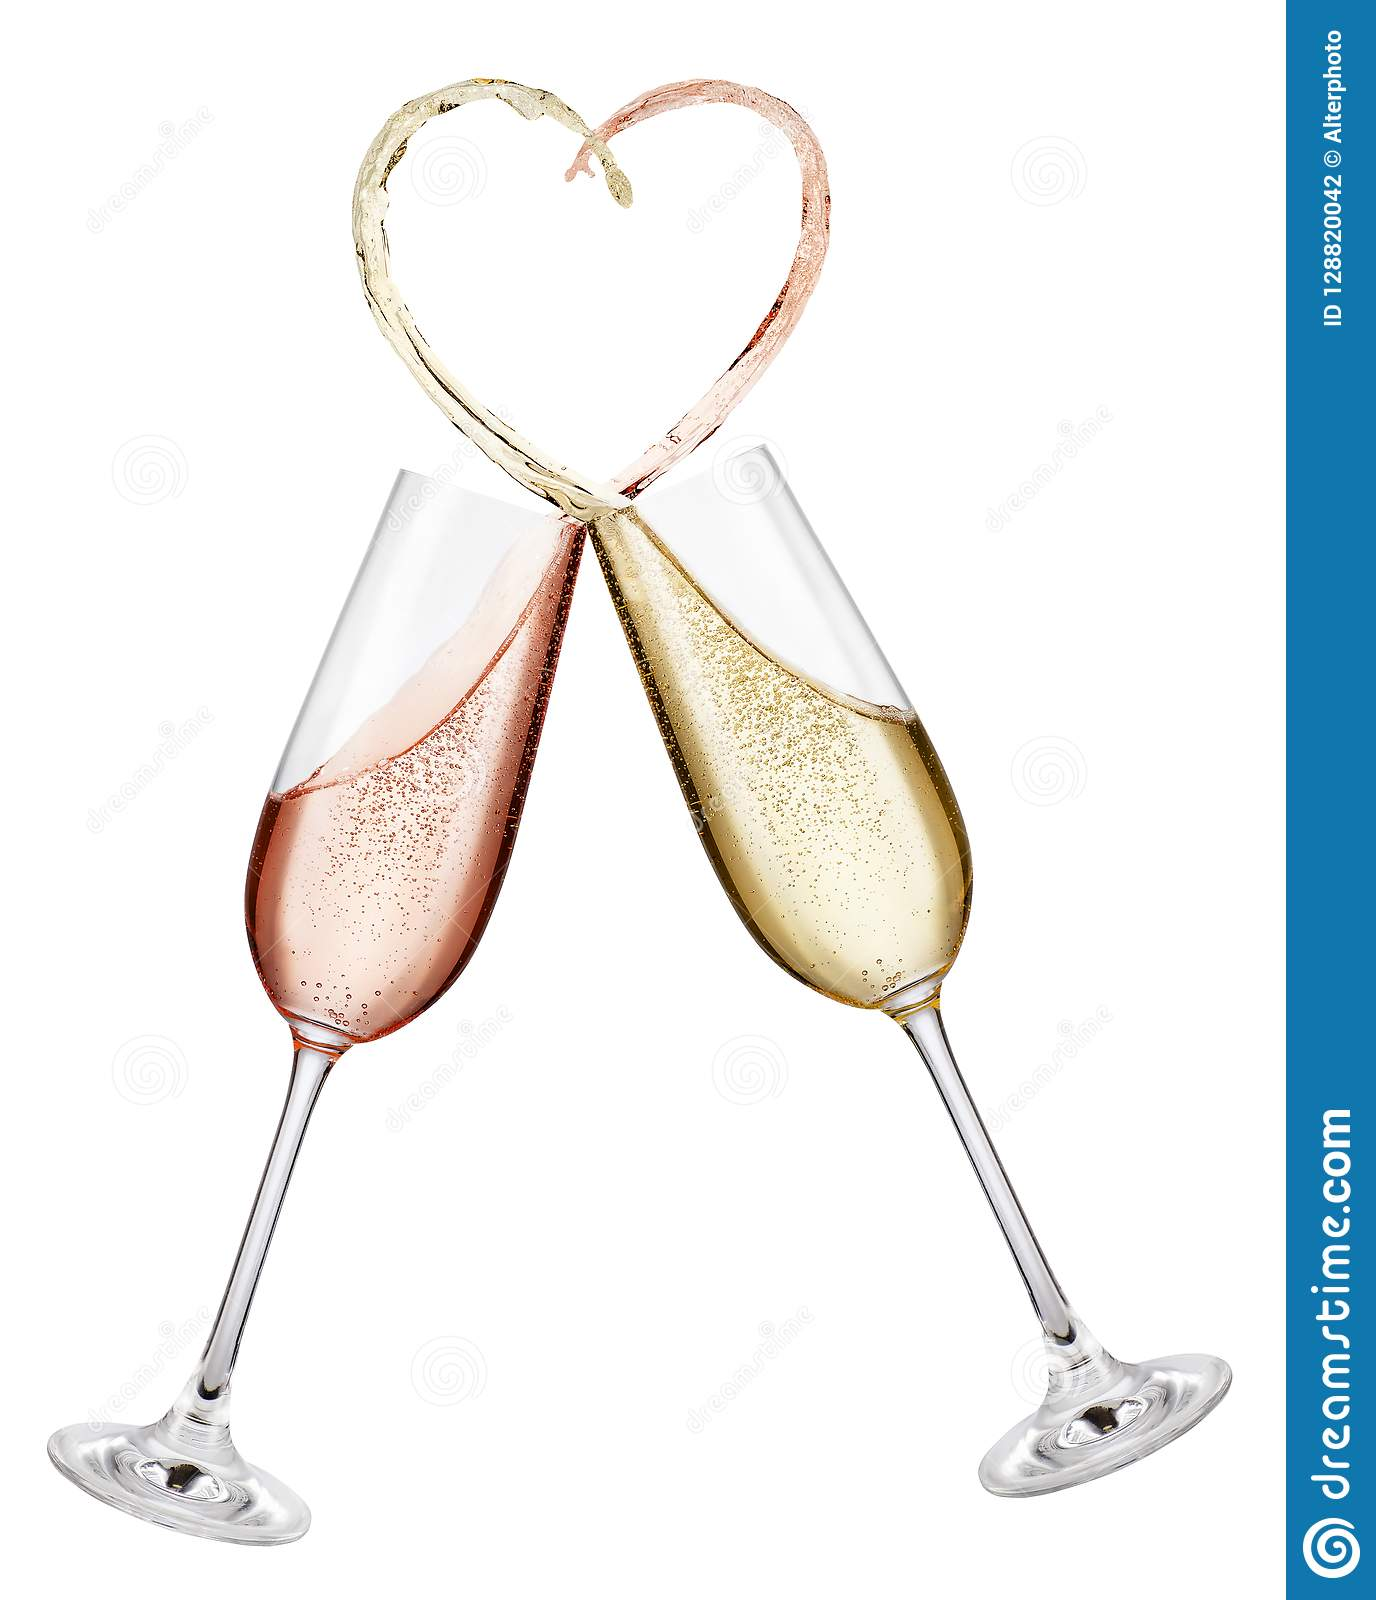 a21822f7f3b6 Glasses of pink and golden champagne making toast with splash in the shape  of heart isolated on white background